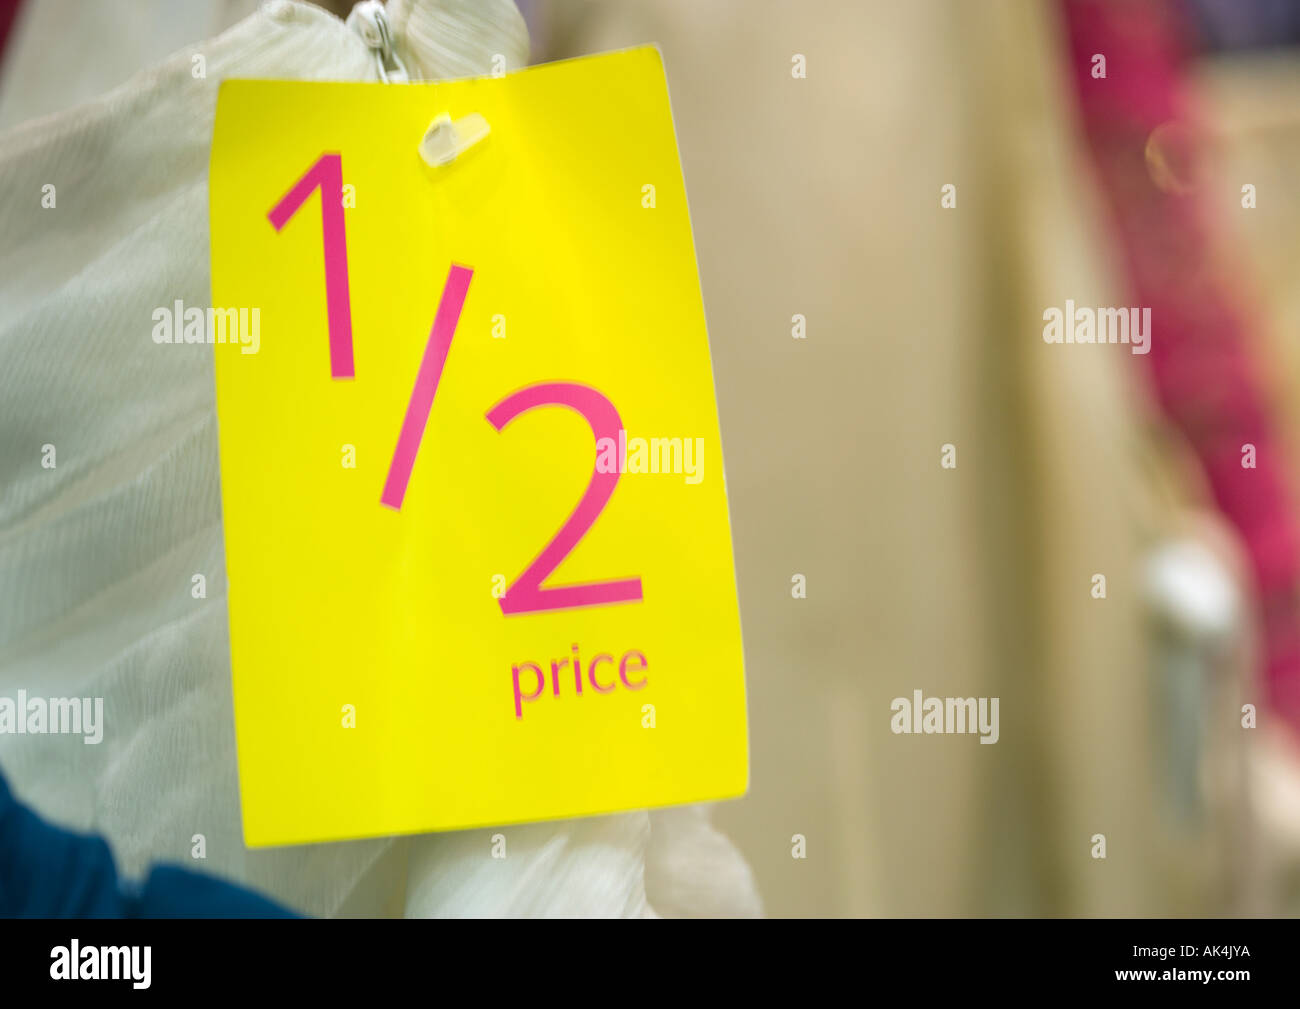 1/2 price tag on clothing, close-up - Stock Image